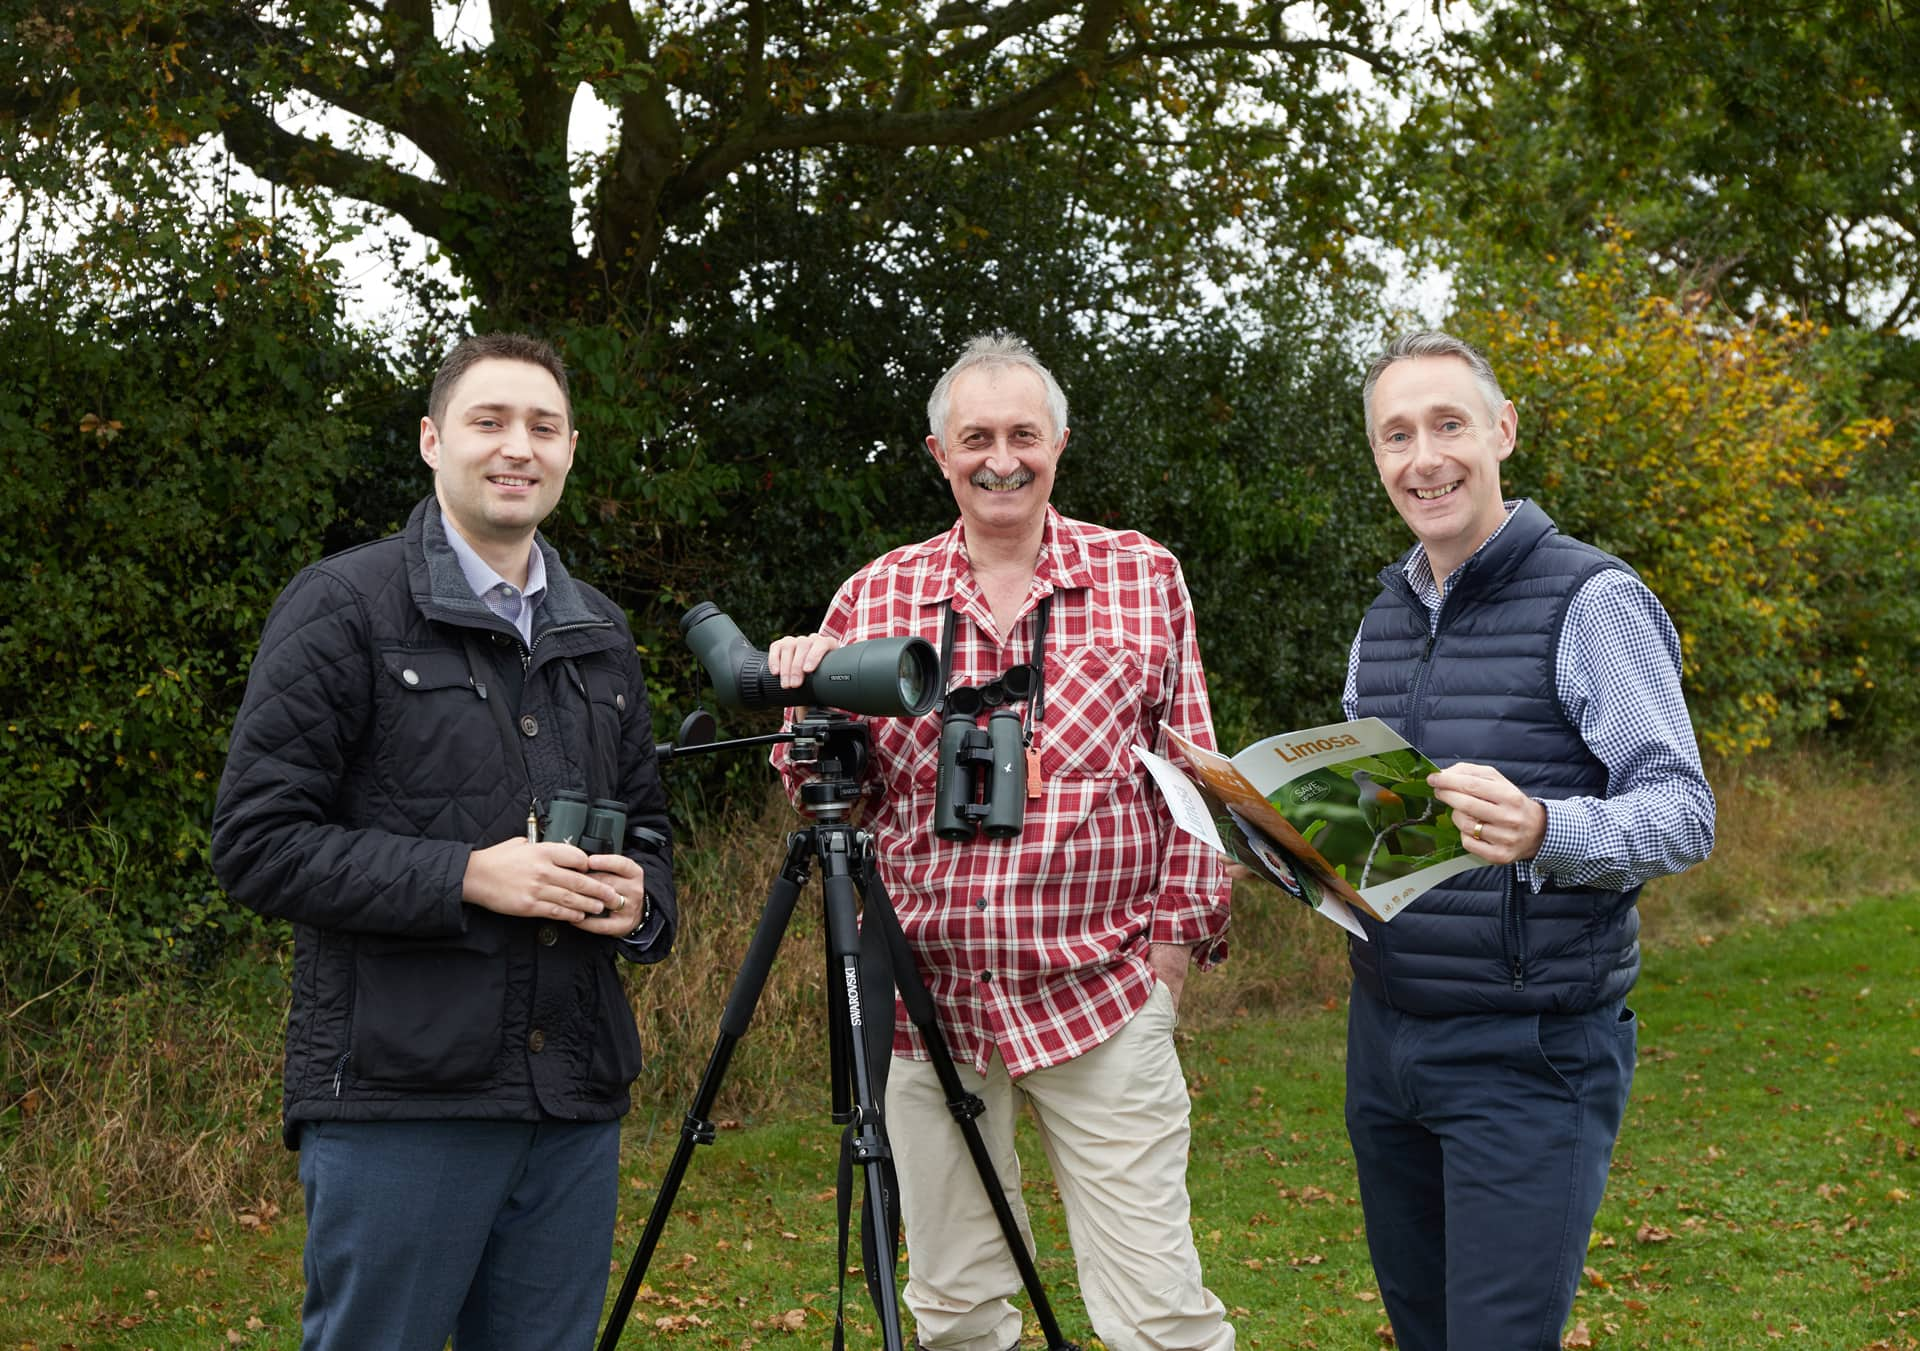 Chris Kightley, Limosa Holidays with Mike Rowles and Martyn Benstead.